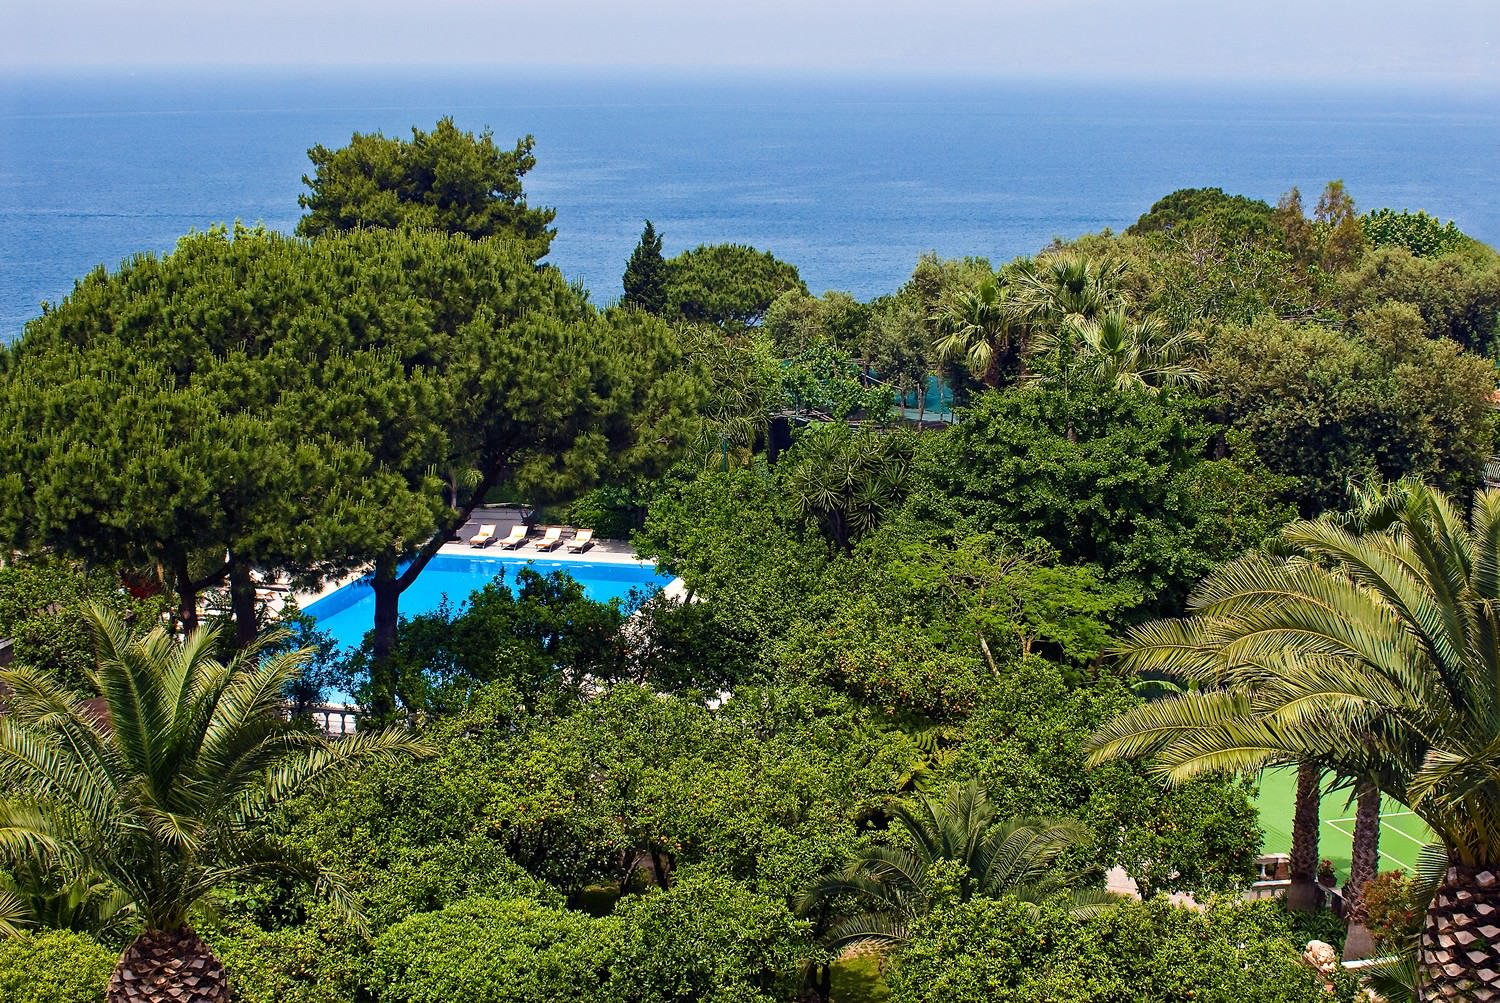 Top Hotels in Sorrento, Italy - Cancel FREE on most hotels ...